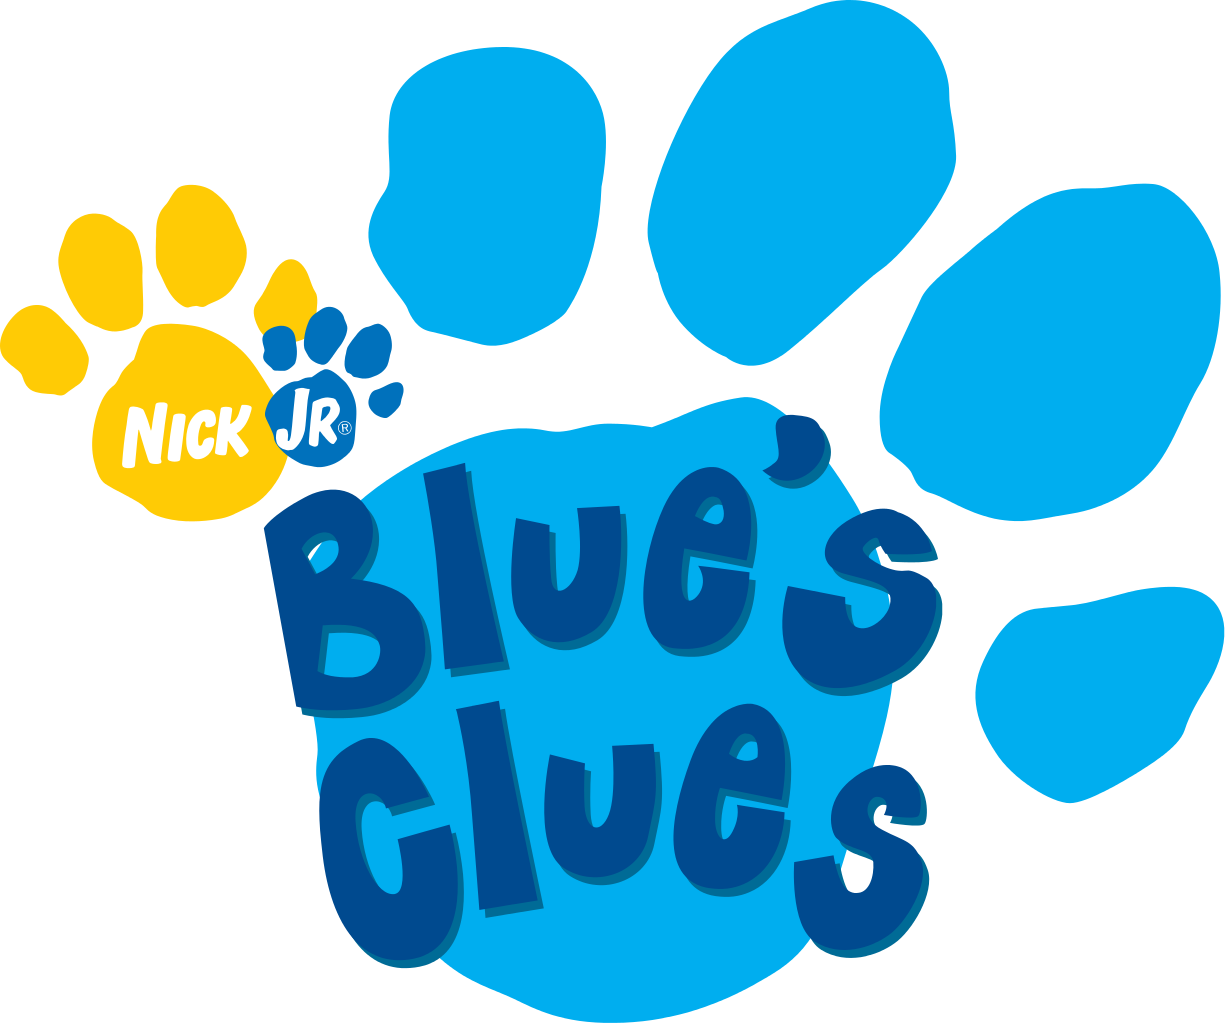 Blues clip svg. File clues logo wikipedia